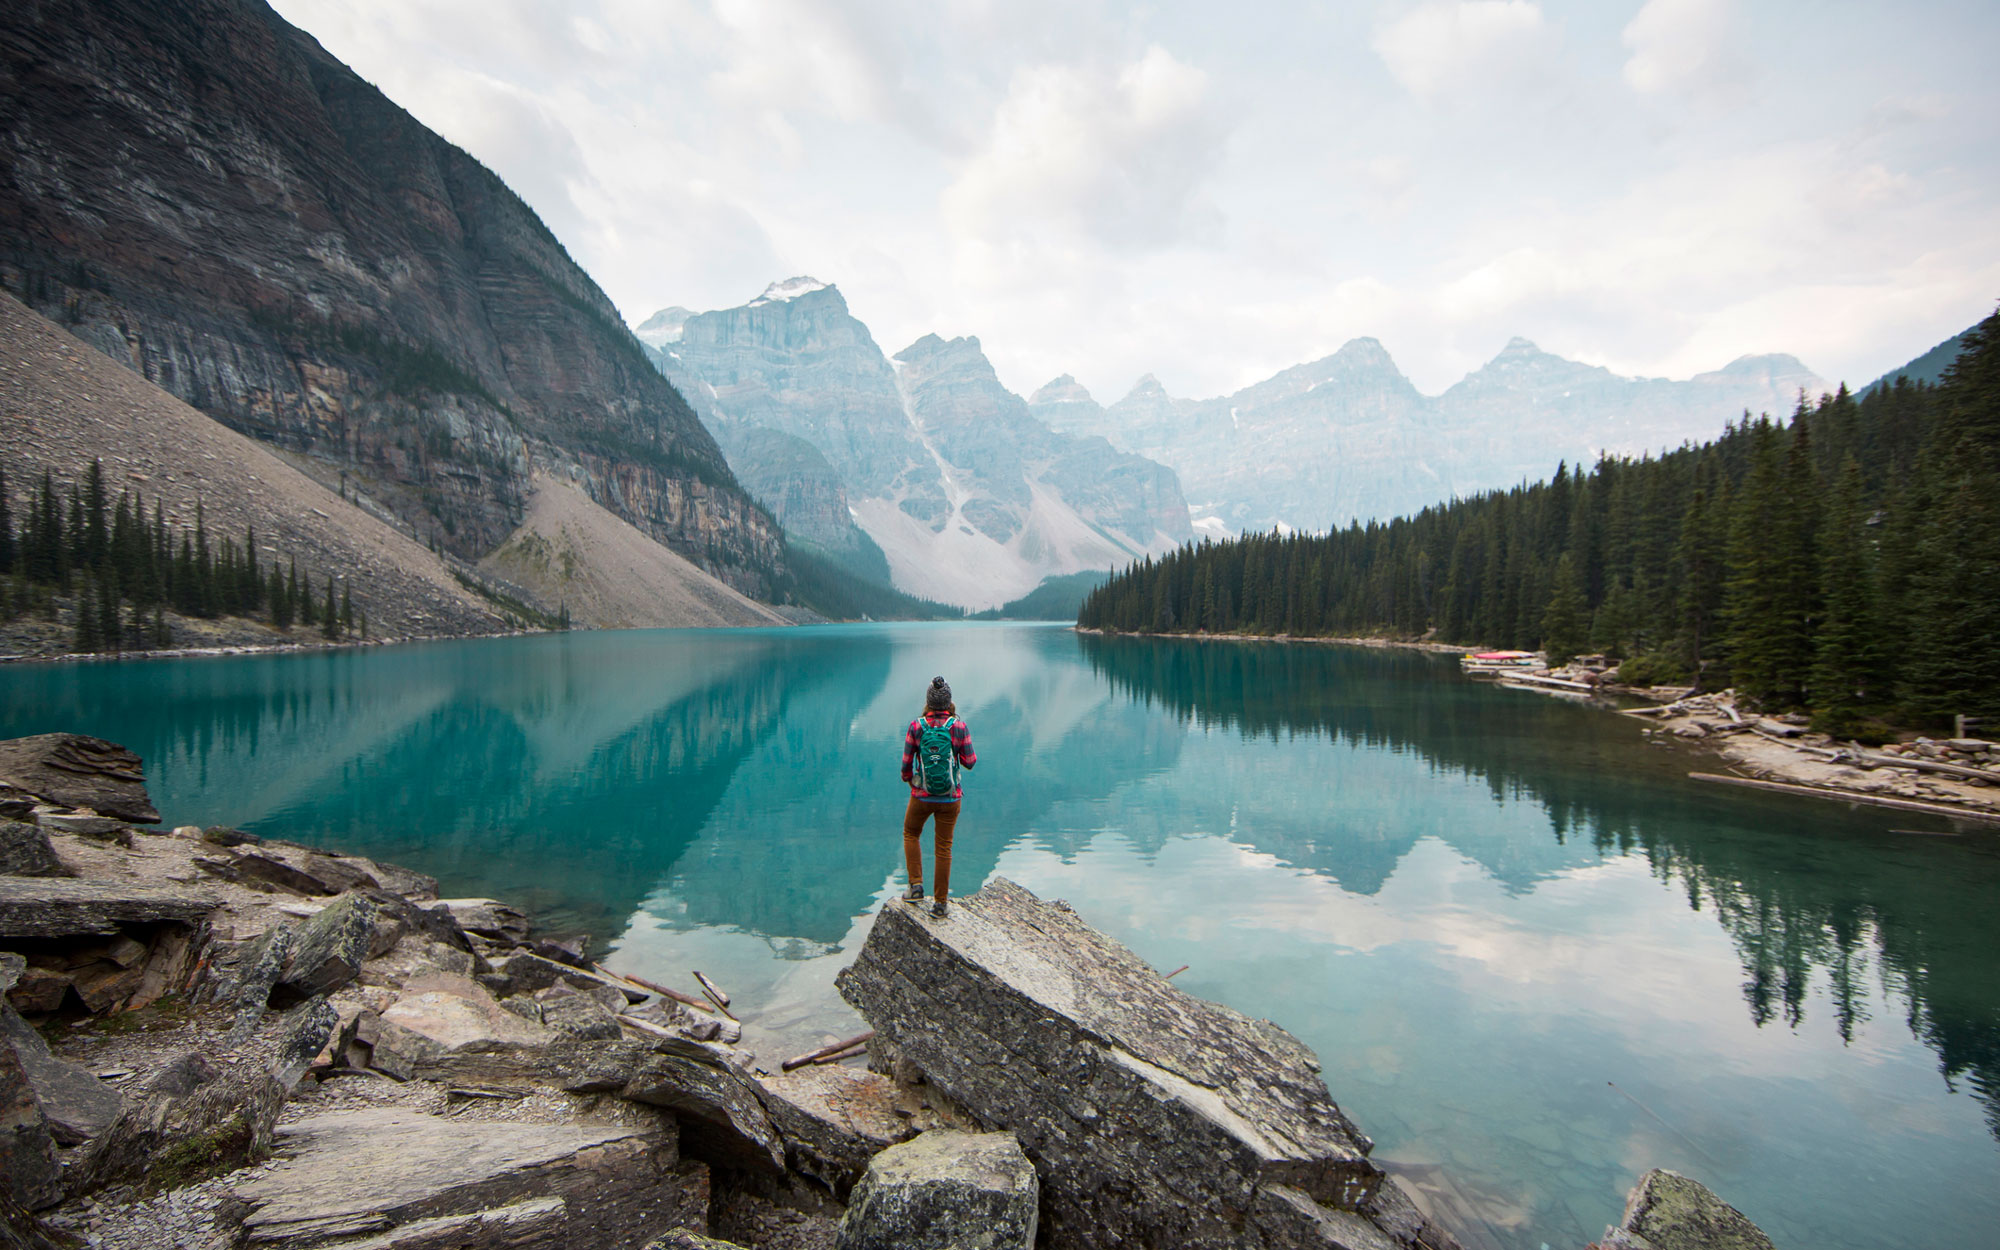 8 Great Tips for 'Re-Entering' Normal Life After a Solo Trip